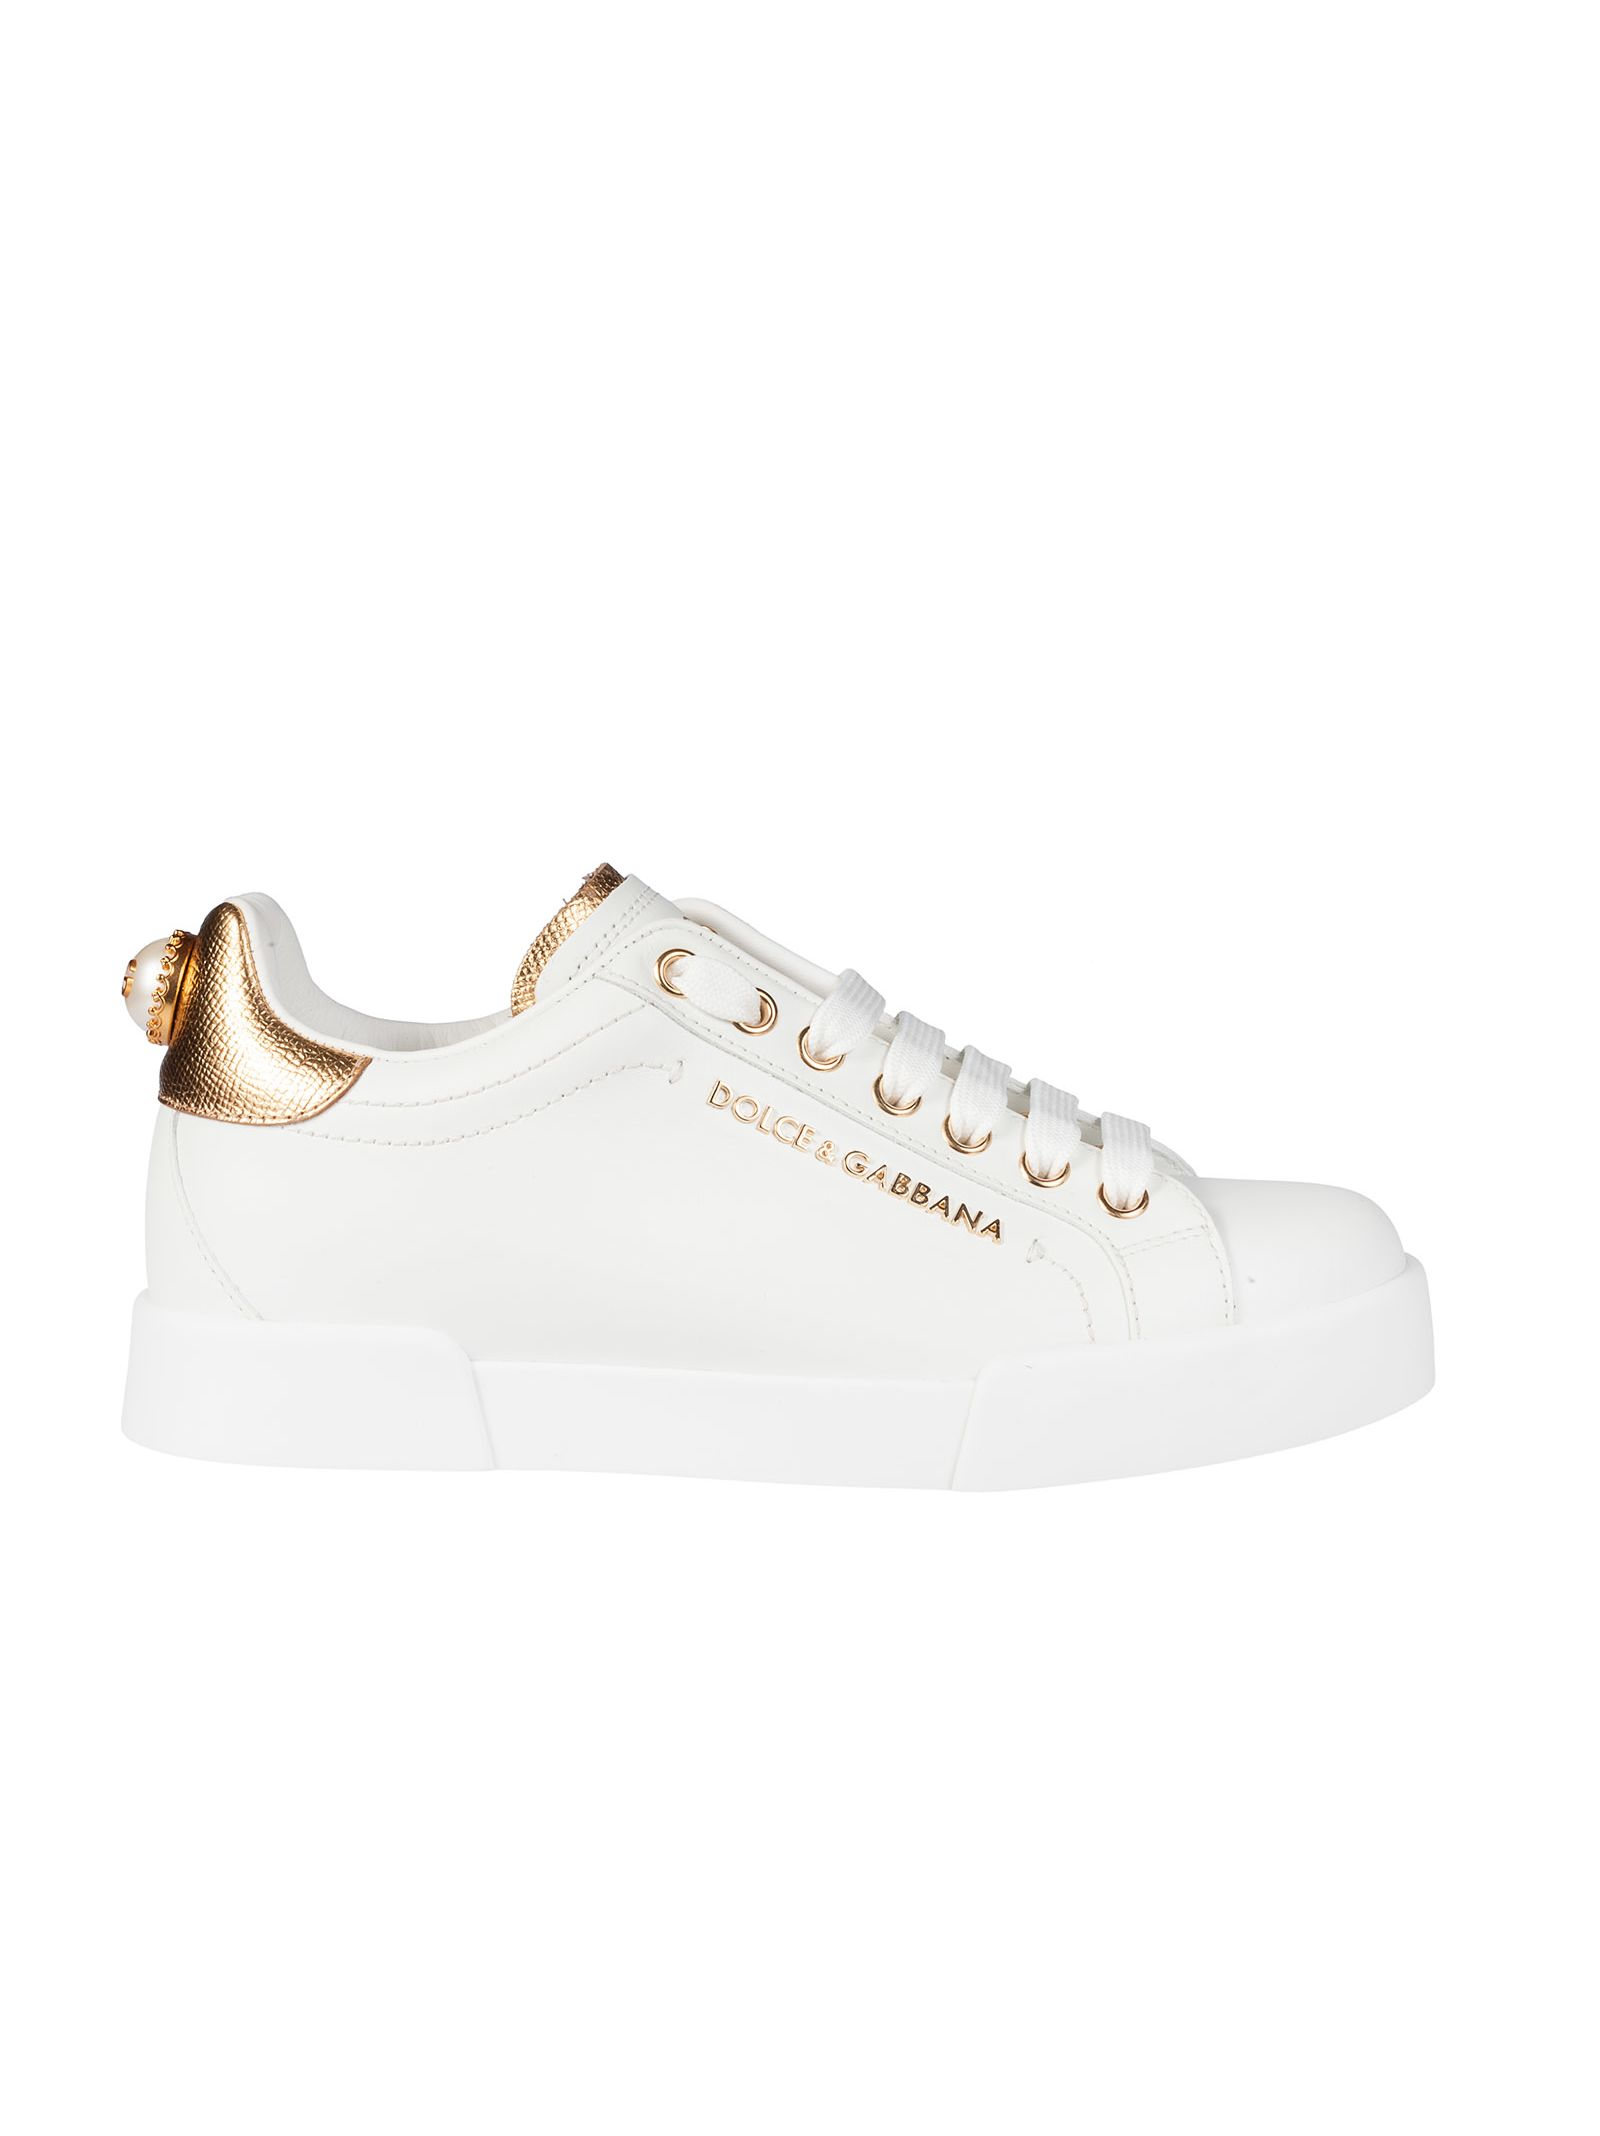 Dolce & Gabbana Pearl Embellished Sneakers